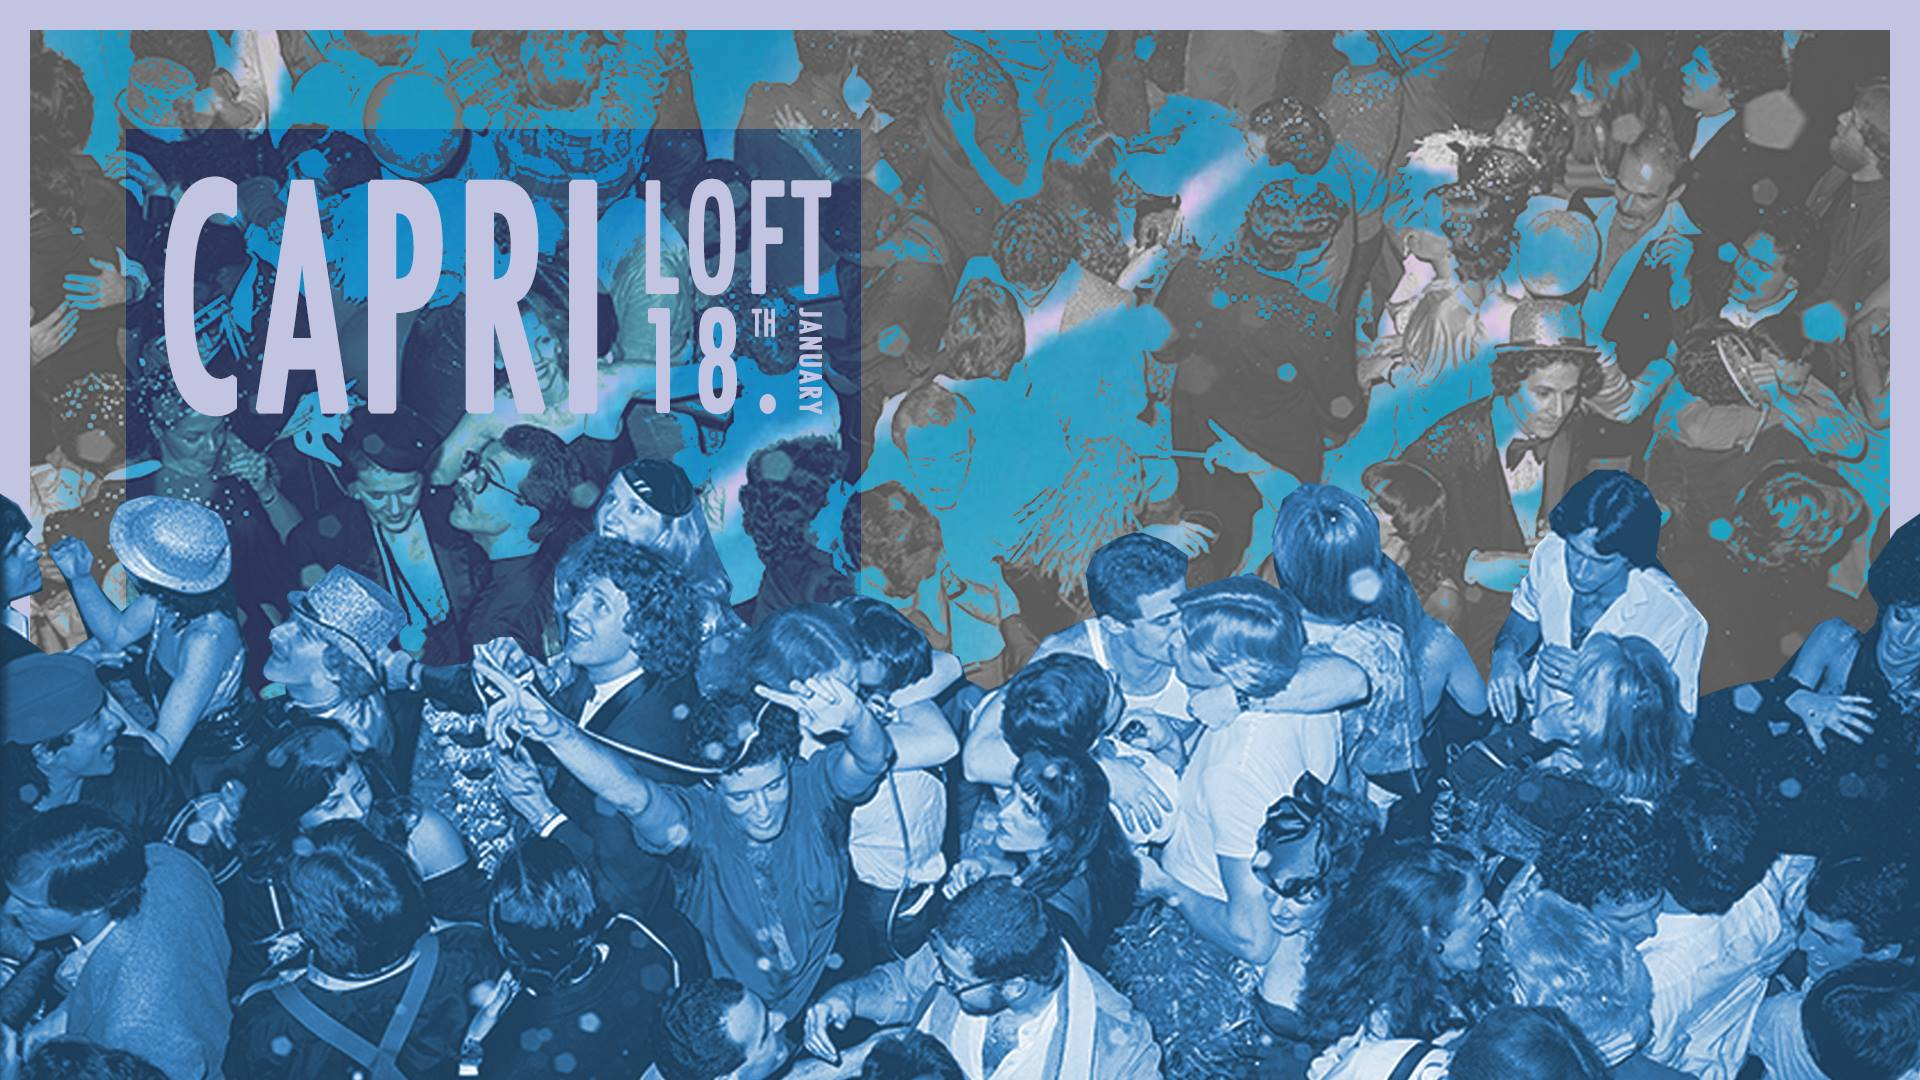 Capri Collective ~ The Loft